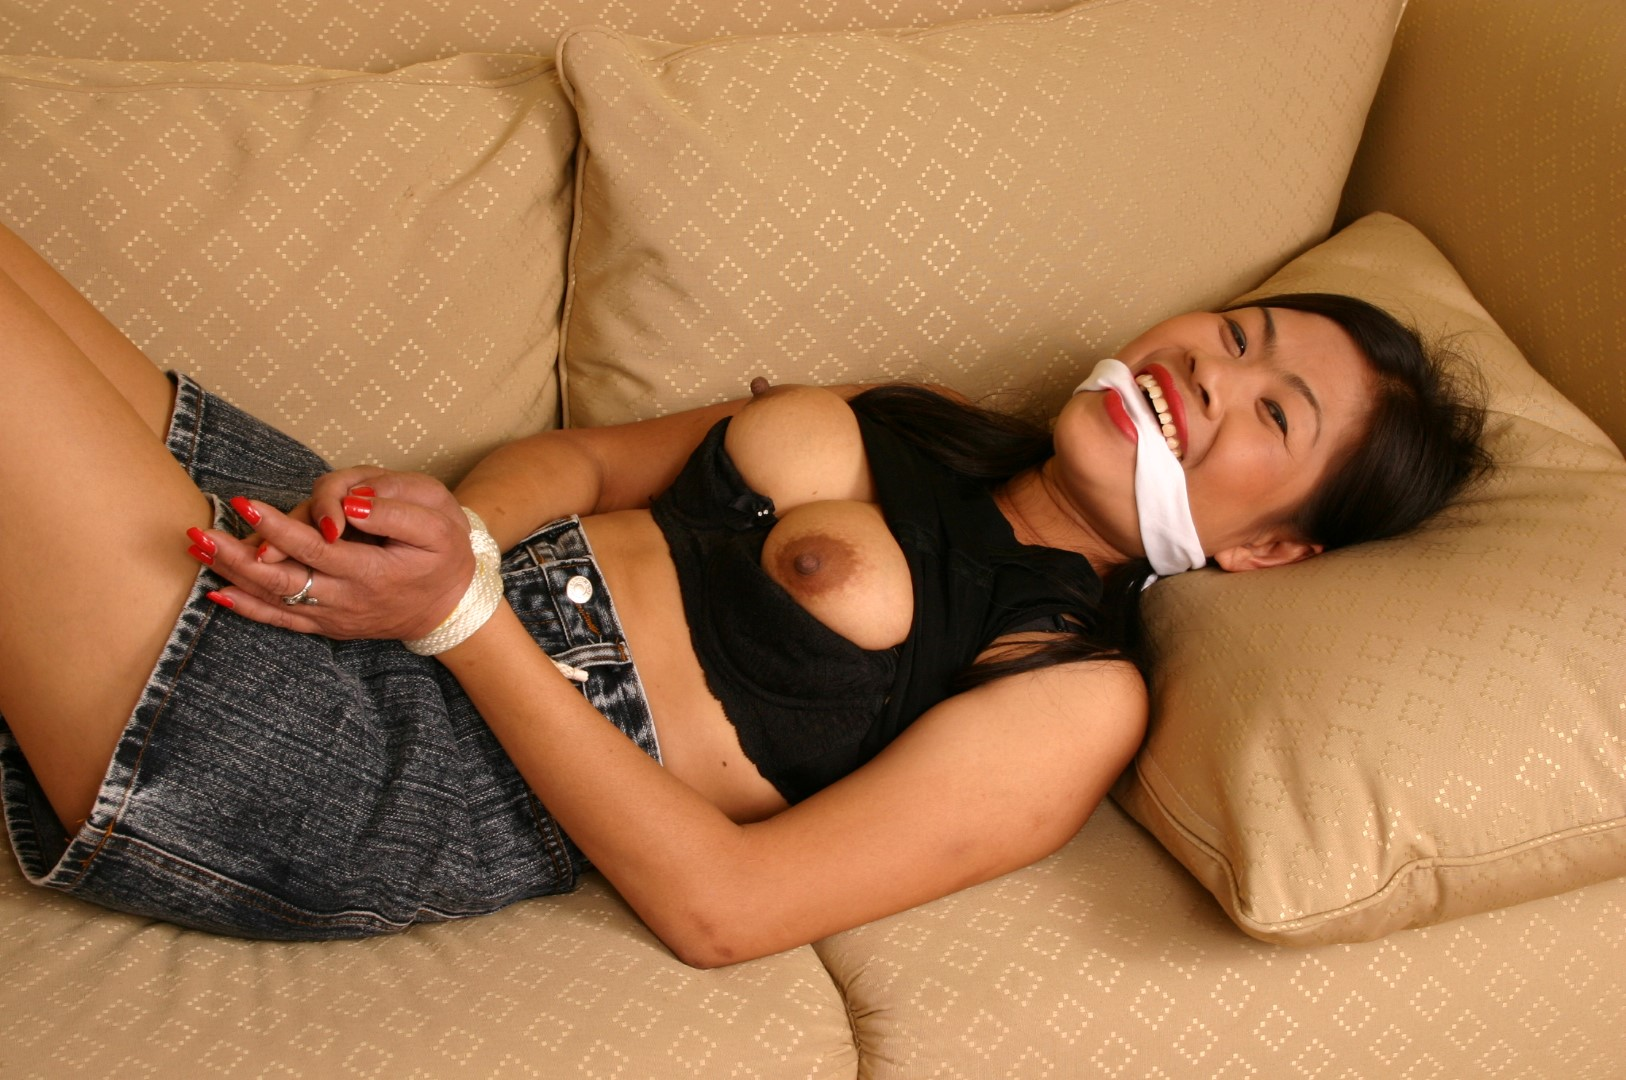 Asian women bound naked